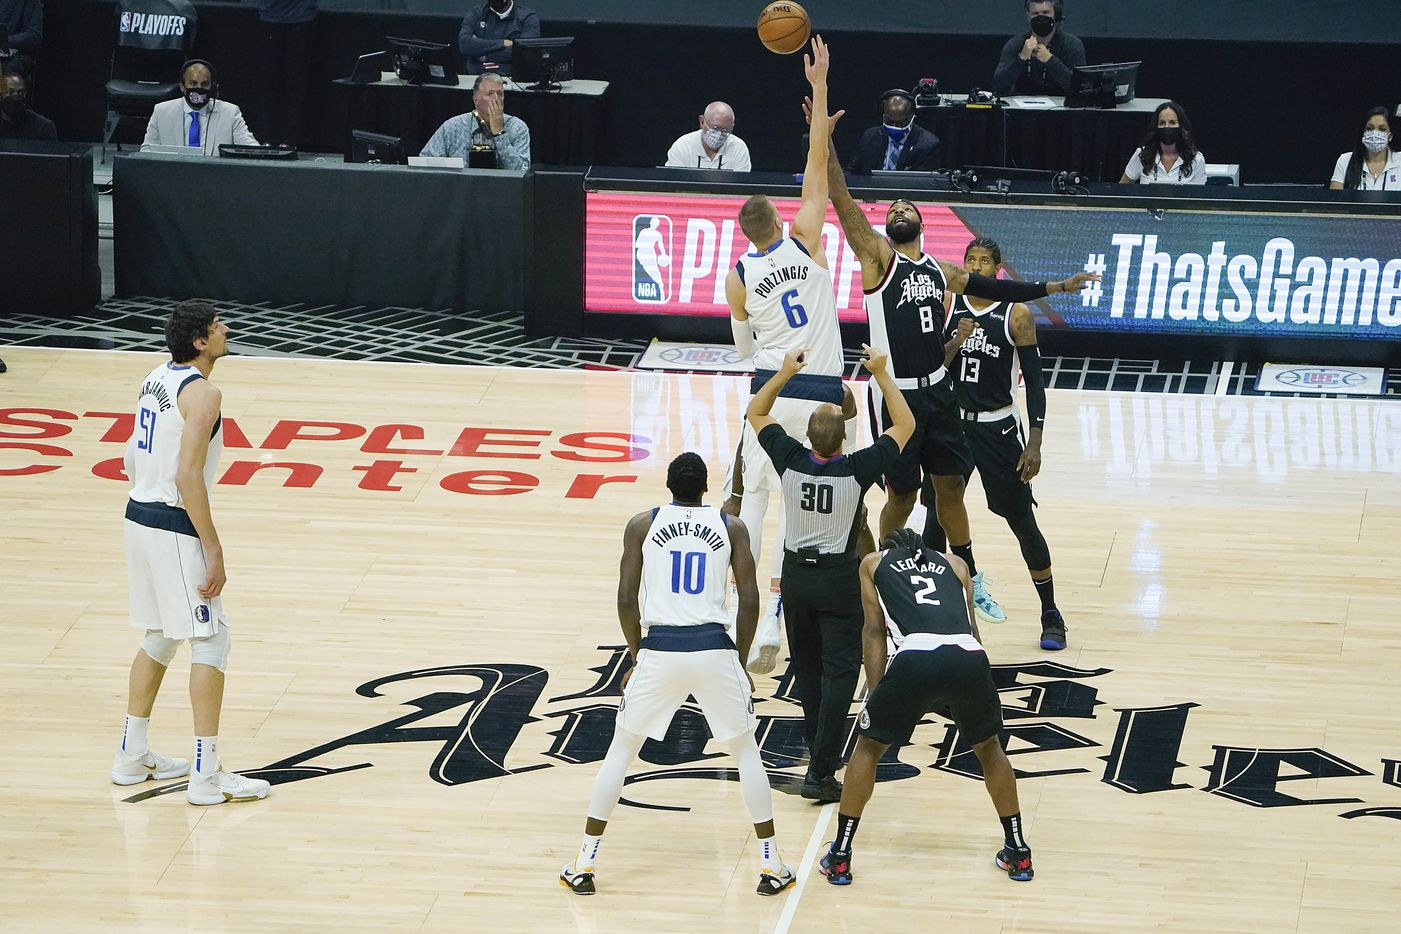 Dallas Mavericks center Kristaps Porzingis (6) wins the opening tipoff of an NBA playoff basketball game over LA Clippers forward Marcus Morris Sr. (8) at the Staples Center on Wednesday, June 2, 2021, in Los Angeles.  (Smiley N. Pool/The Dallas Morning News)